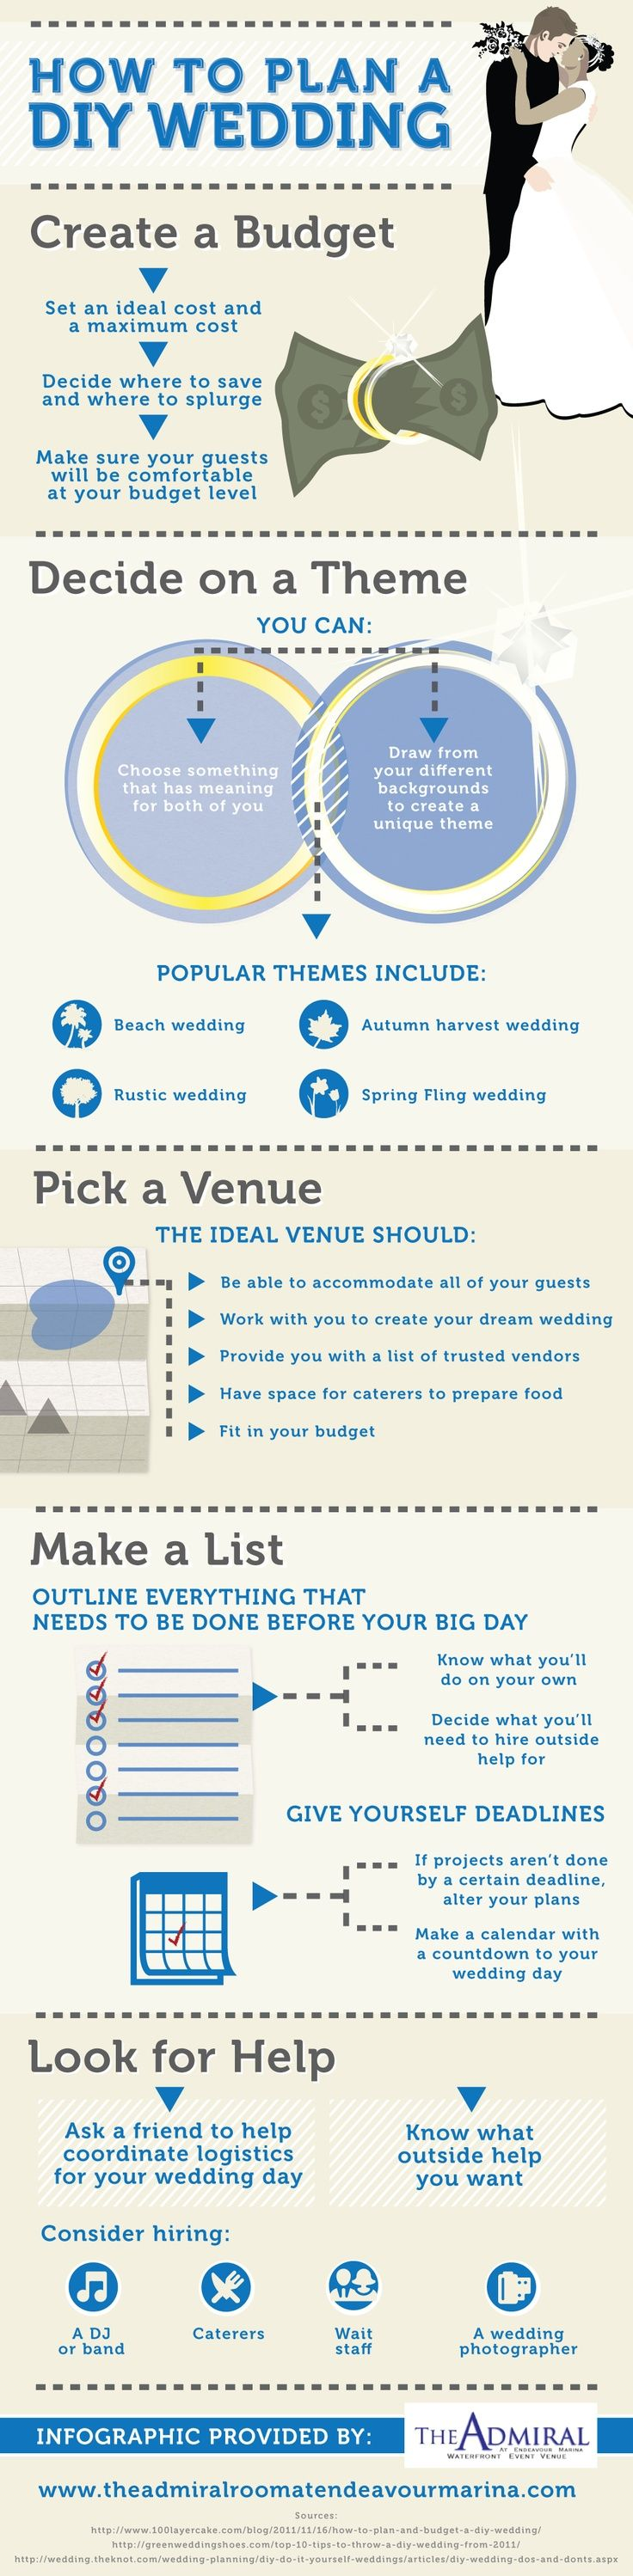 Check out this great do it yourself wedding infographic! Also, don't forget to check out our...